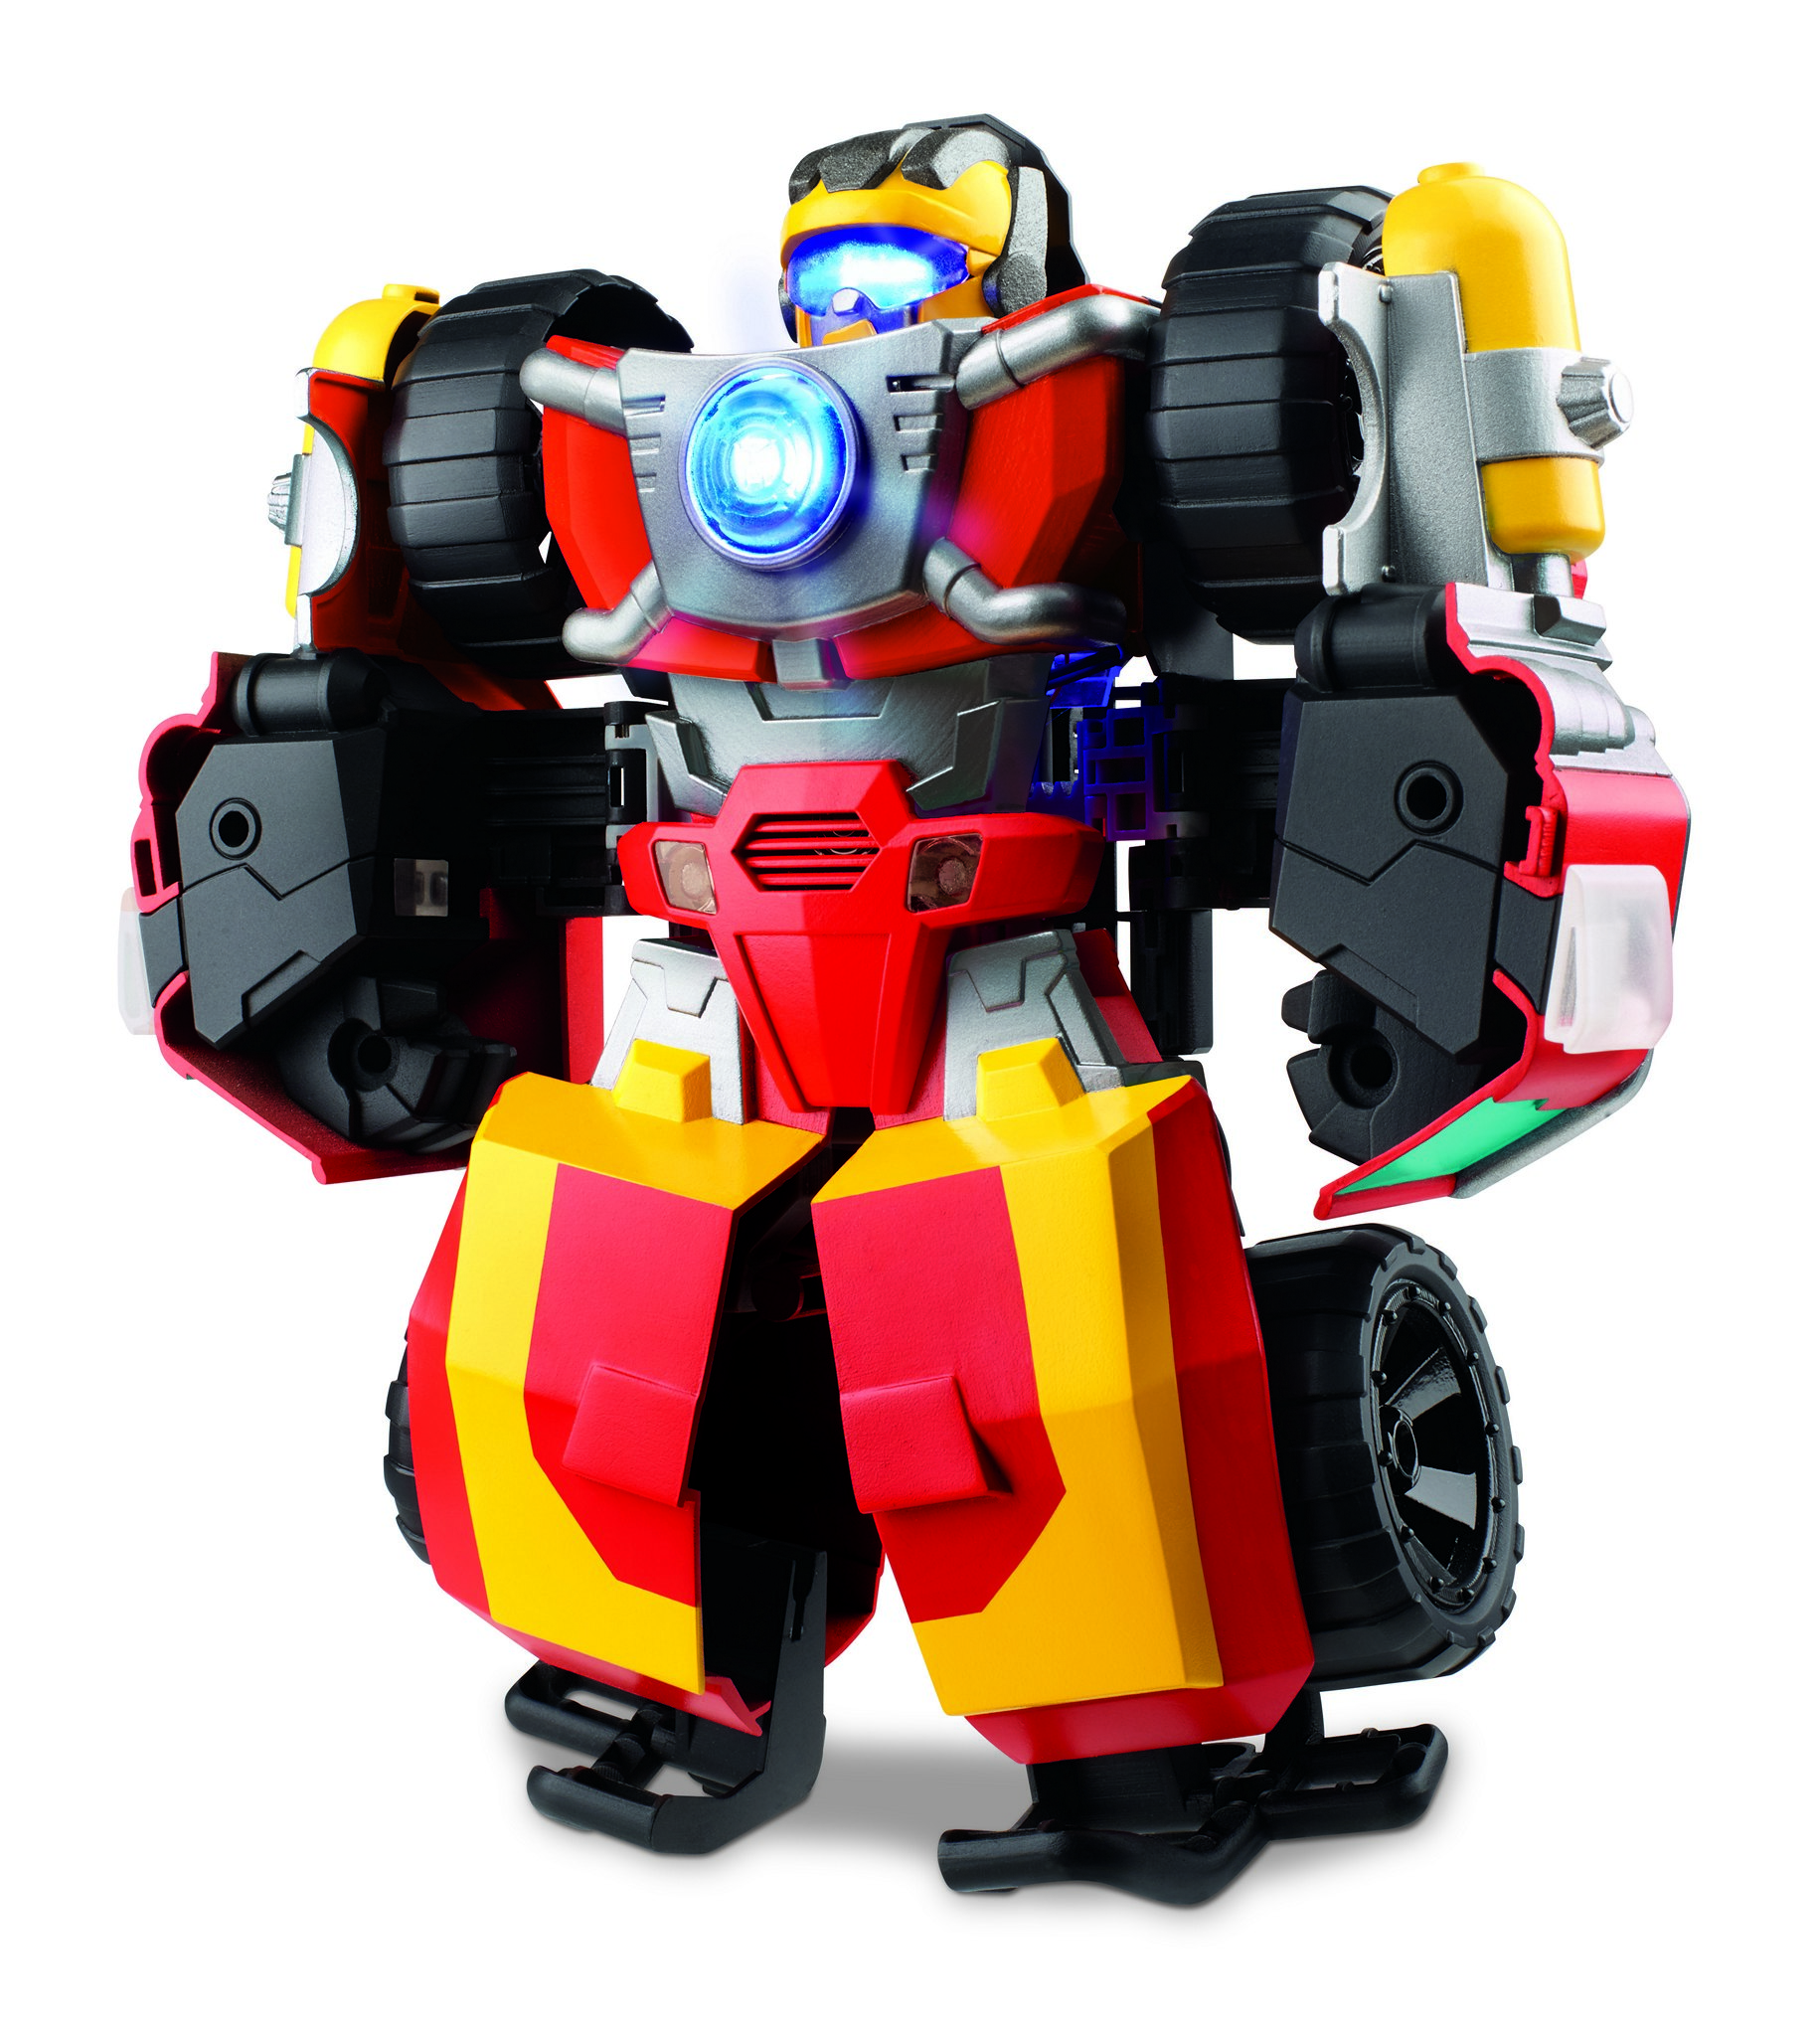 New TRANSFORMERS Rescue Bots BUMBLEBEE Robot Off Road Vehicle Playskool Academy